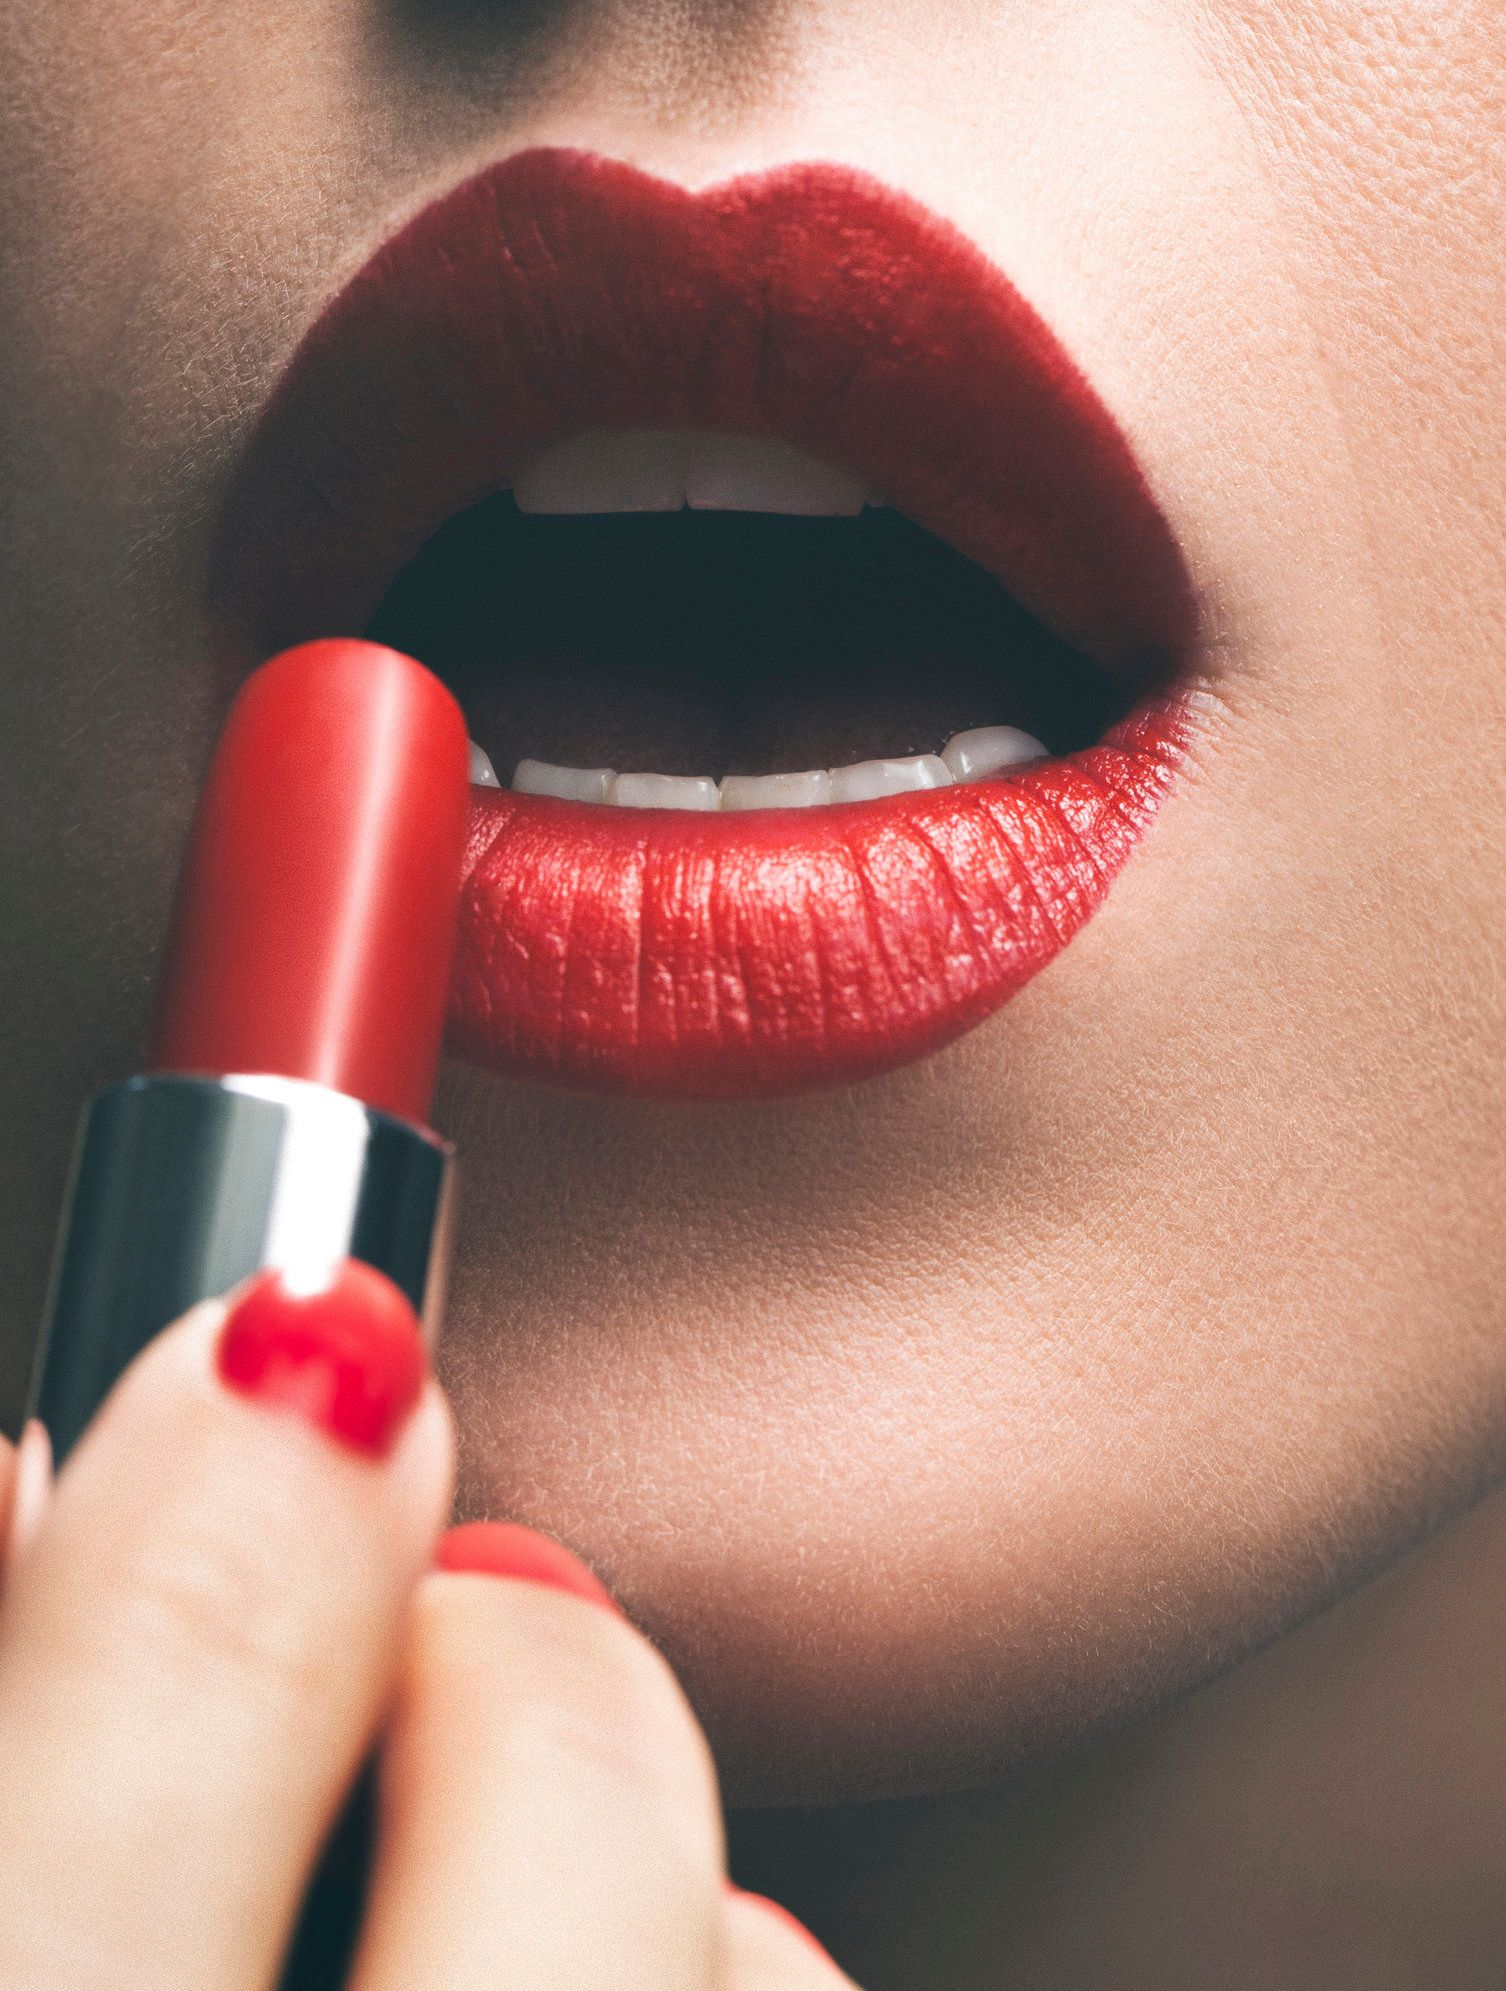 Close up of woman applying red lipstick